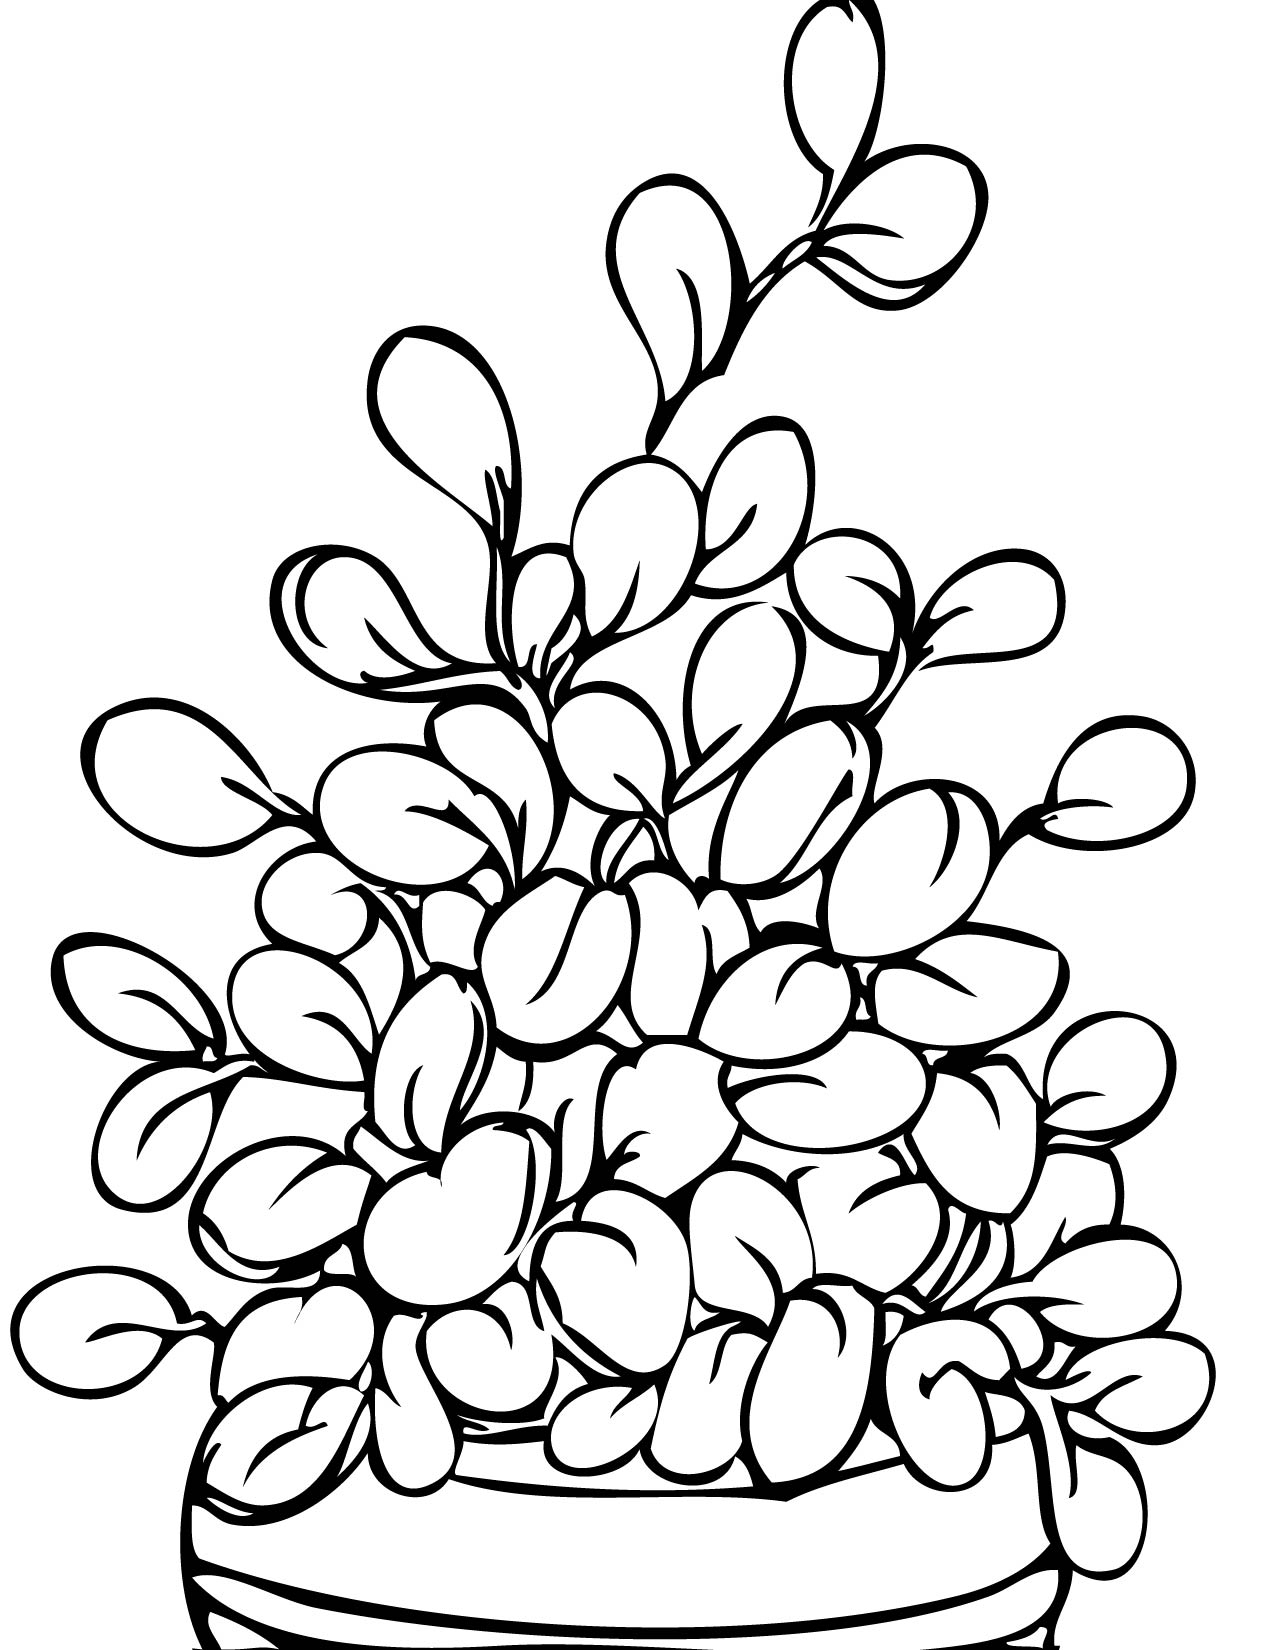 Tomato Plant Coloring Page Free Printable Pages New Bertmilne Printable Of Blooming Herbs Coloring Page Ultra Coloring Pages Download